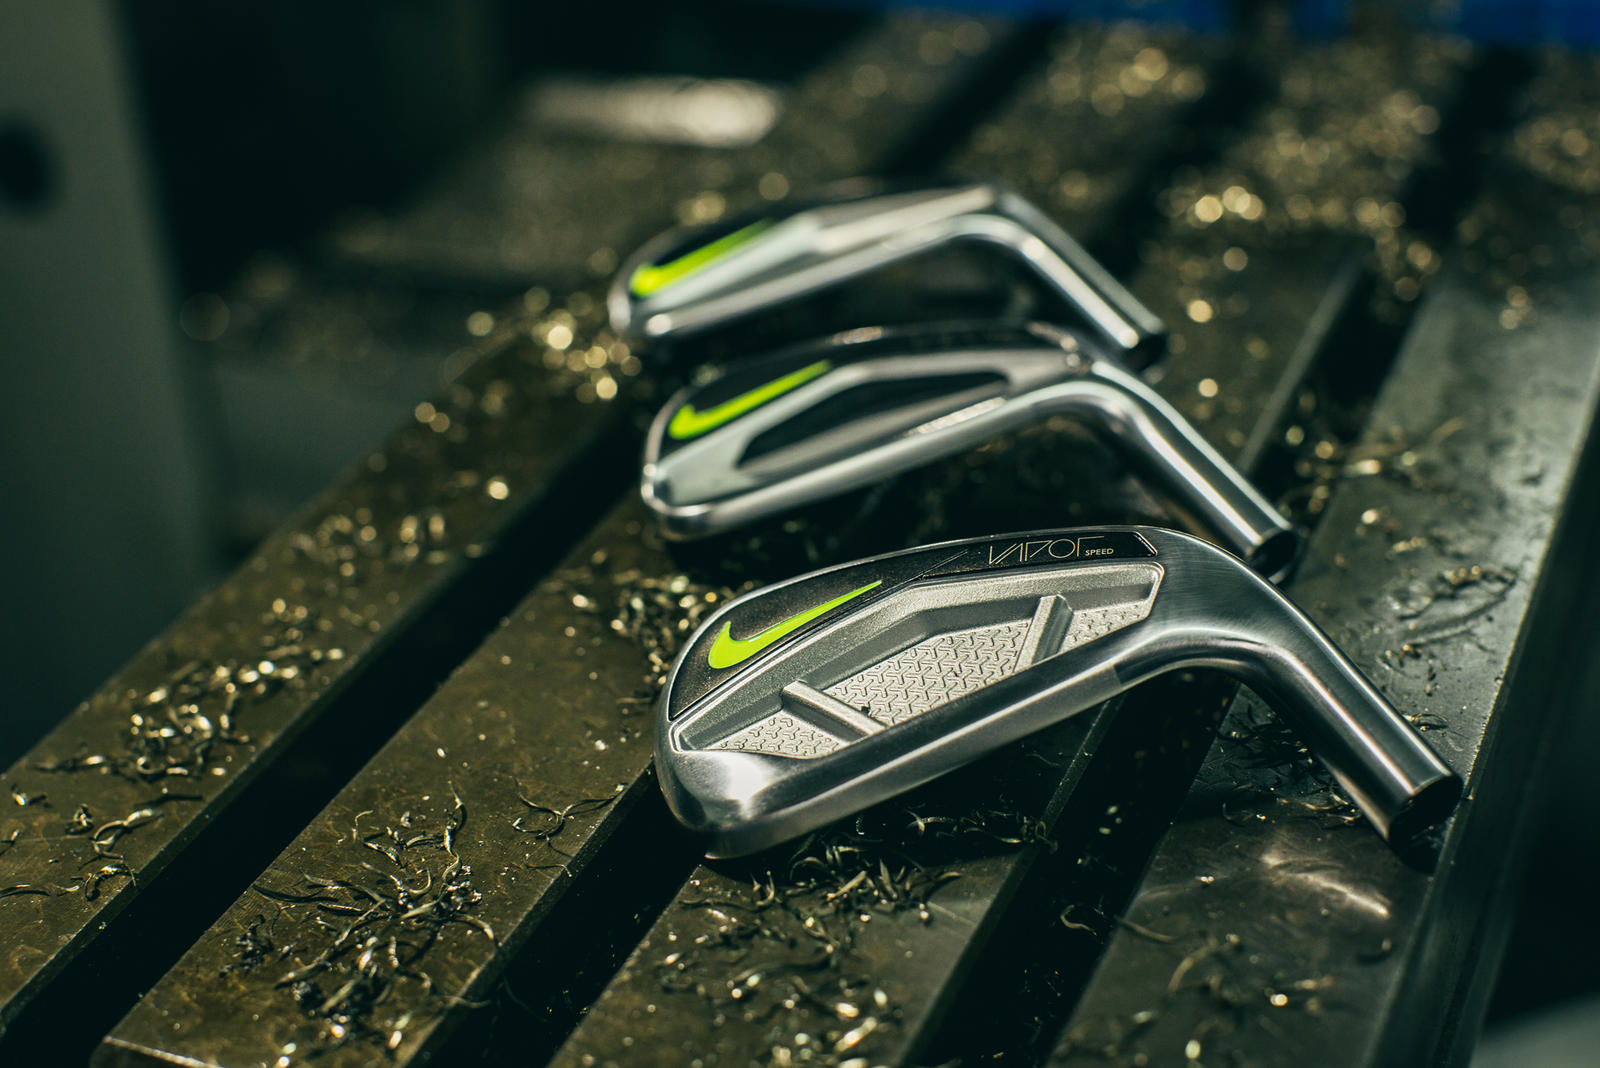 Nike Golf introduces the Vapor iron franchise.